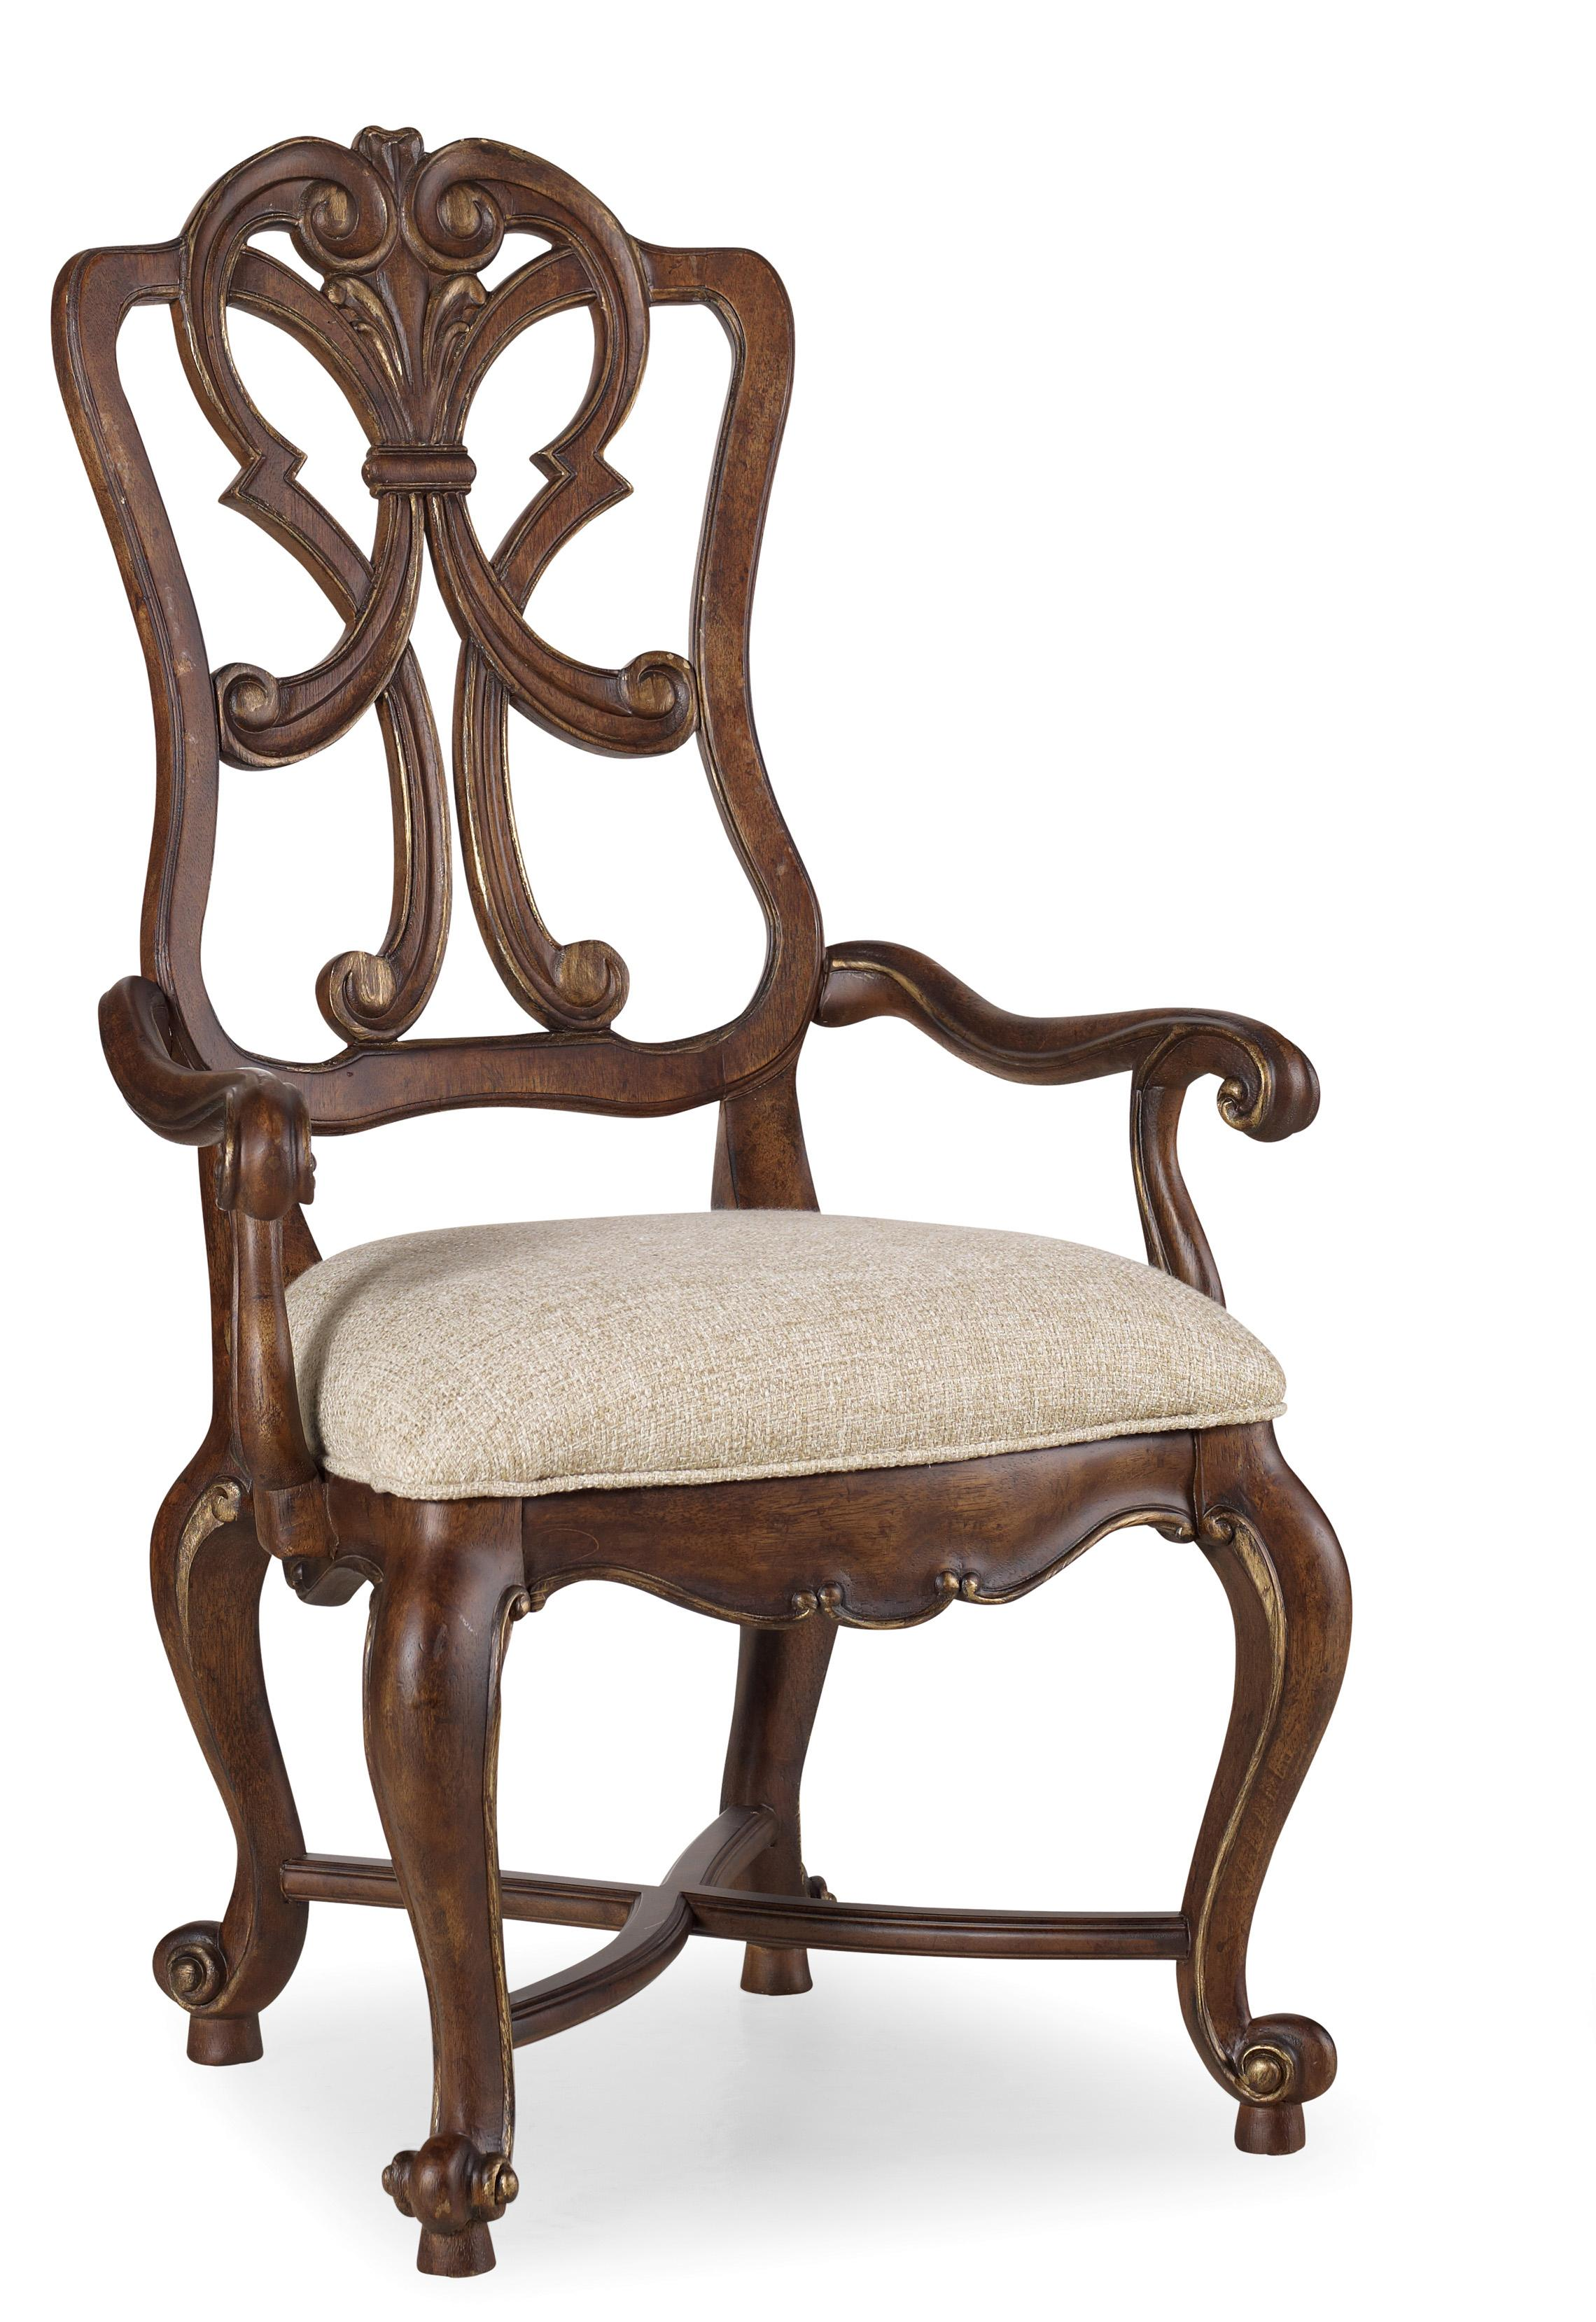 Hooker Furniture Adagio Wood Back Arm Chair - Item Number: 5091-75401